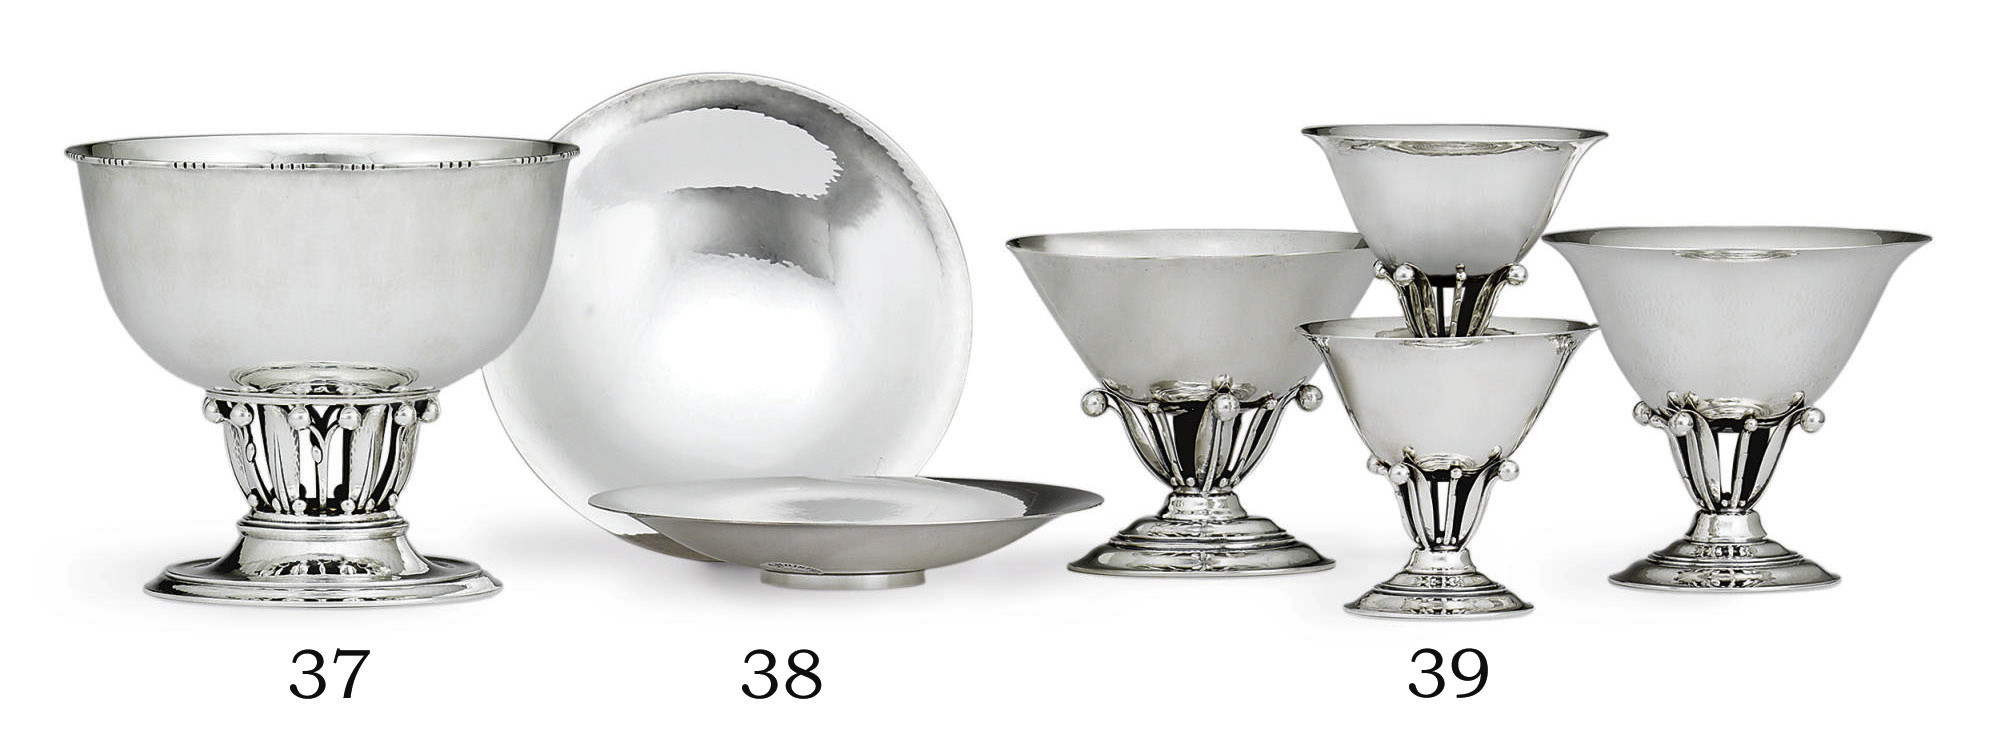 A PAIR OF DANISH SILVER DISHES